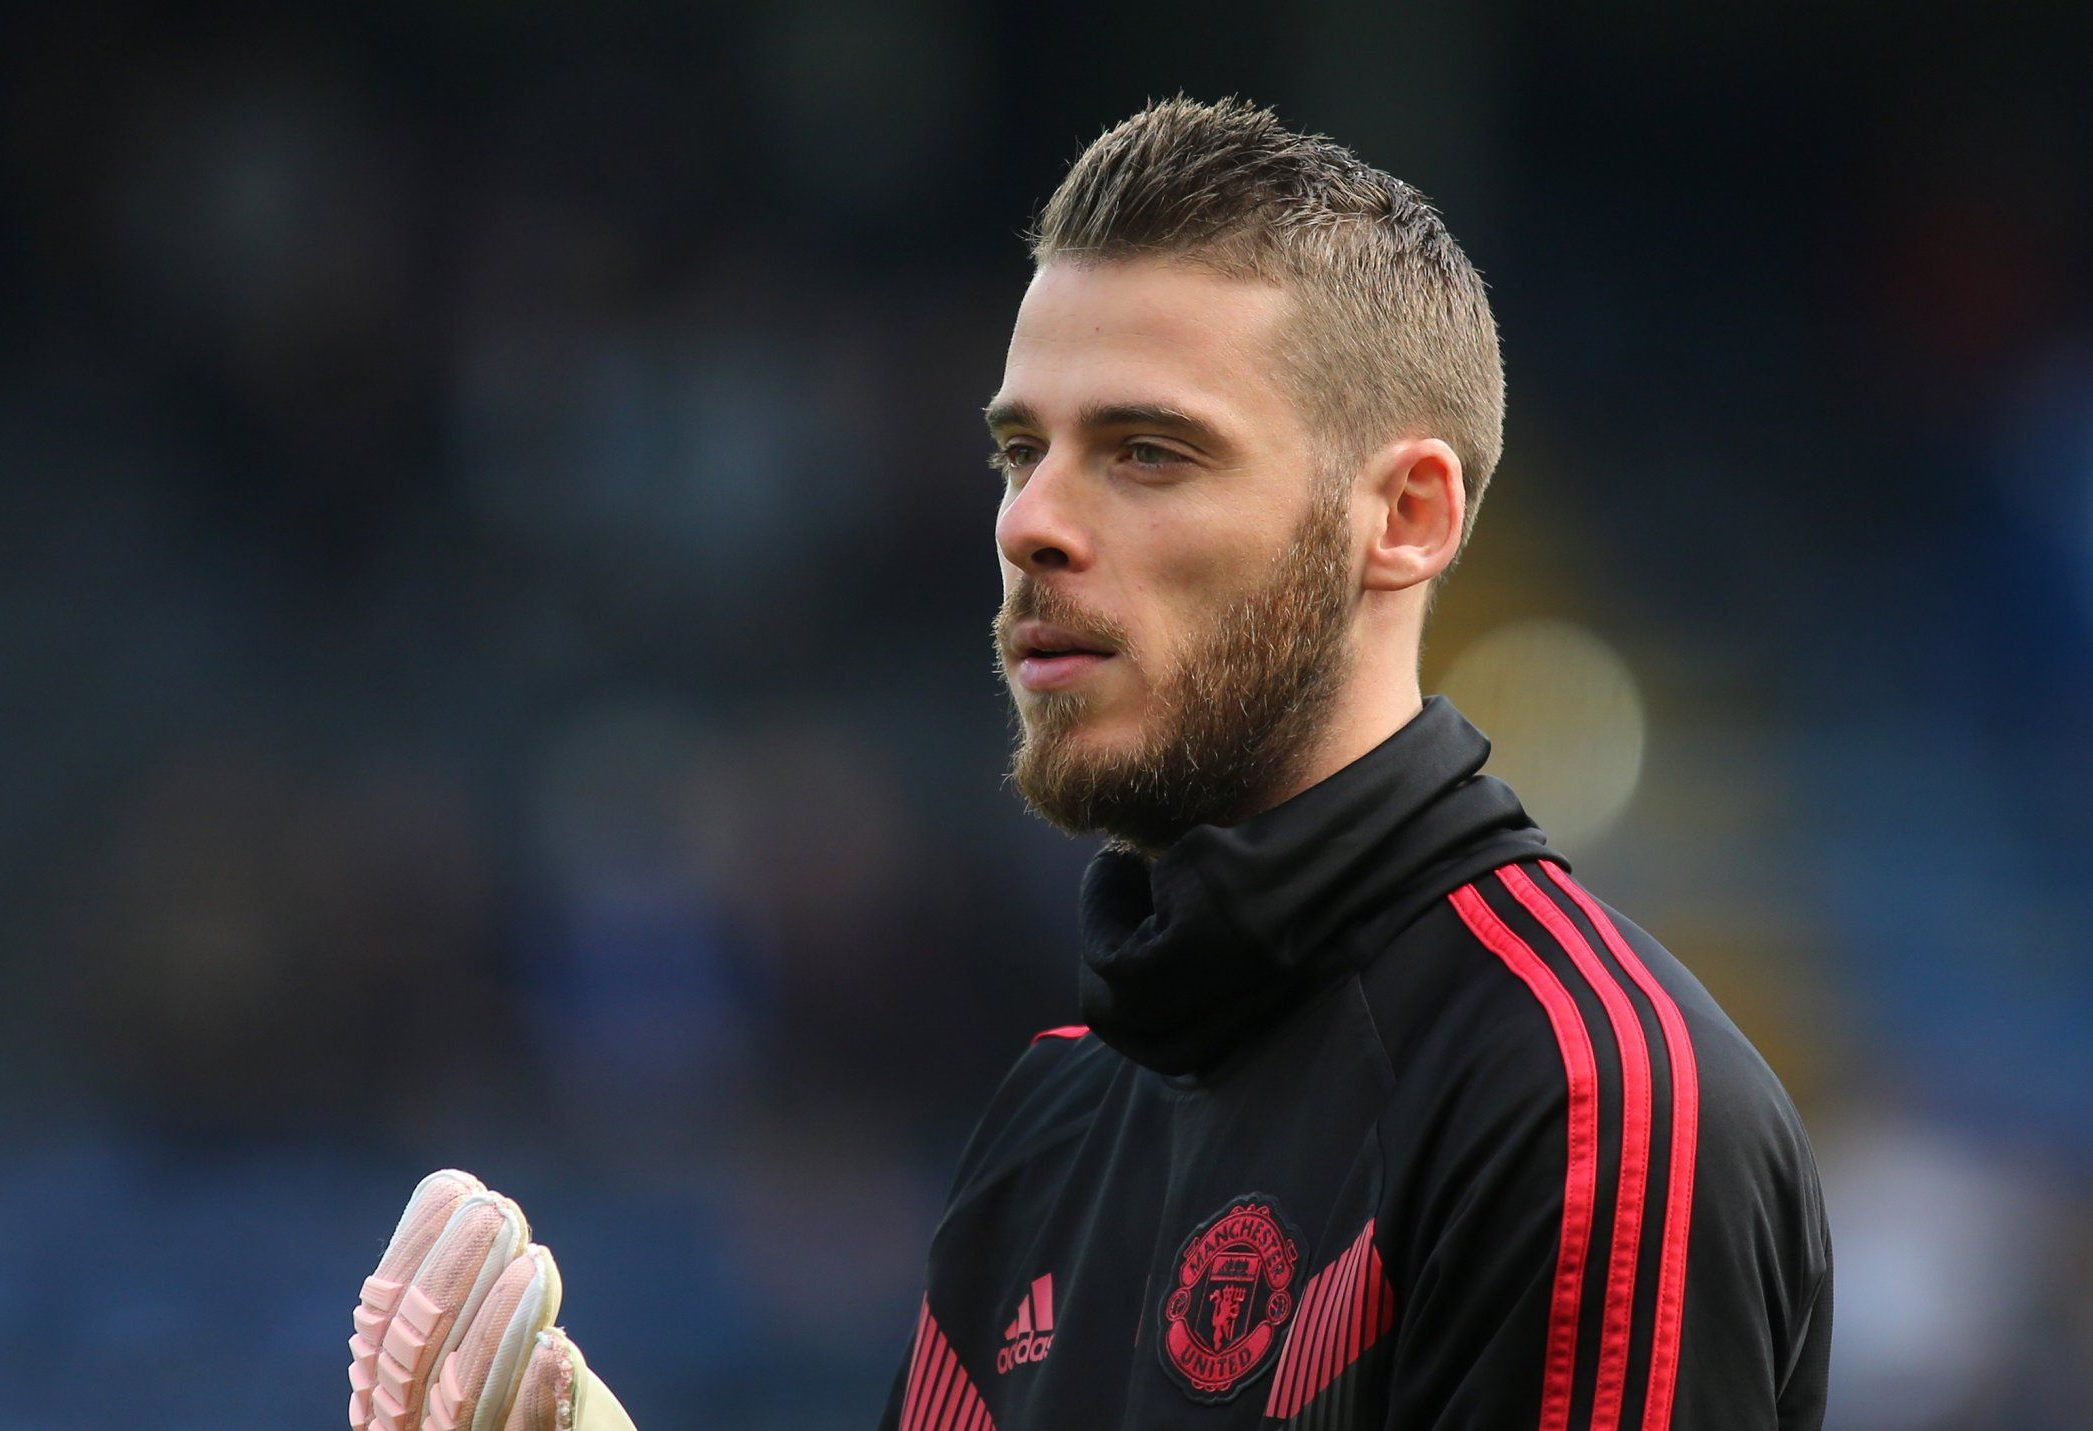 Why Manchester United haven't triggered 12-month extension clause in David De Gea's contract